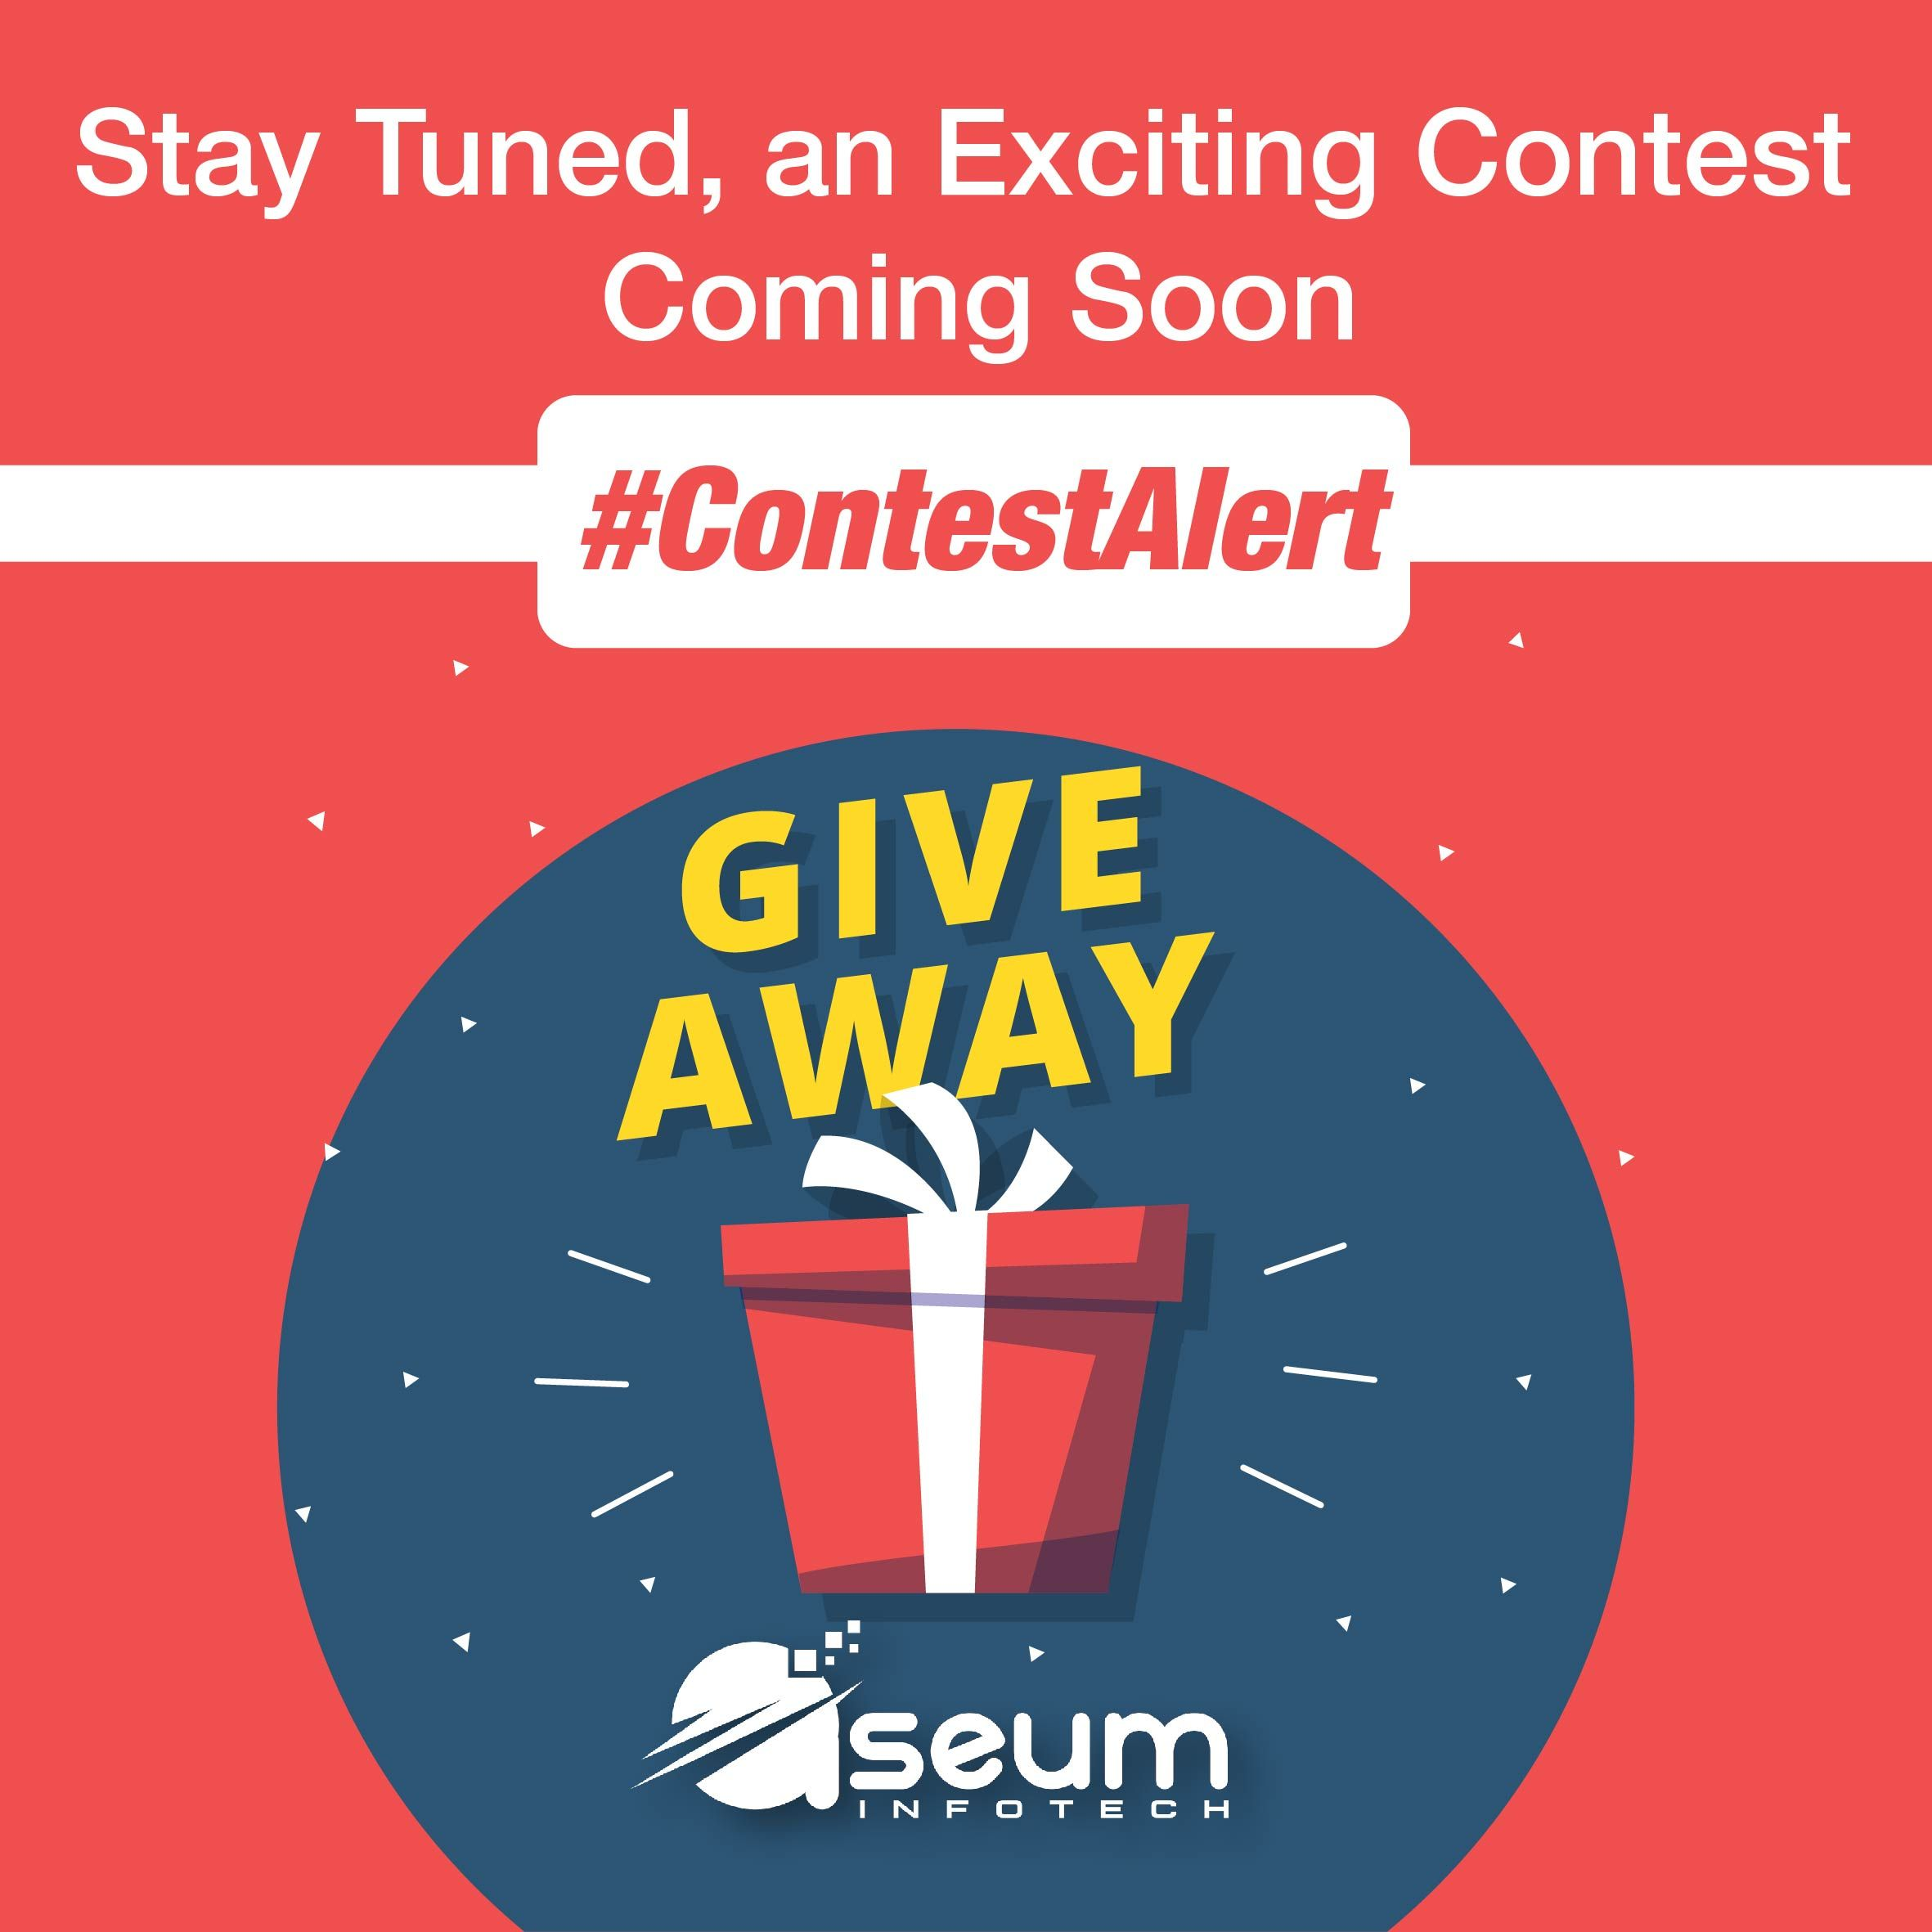 aseuminfotech ContestAlert Contest StayTuned giveaway